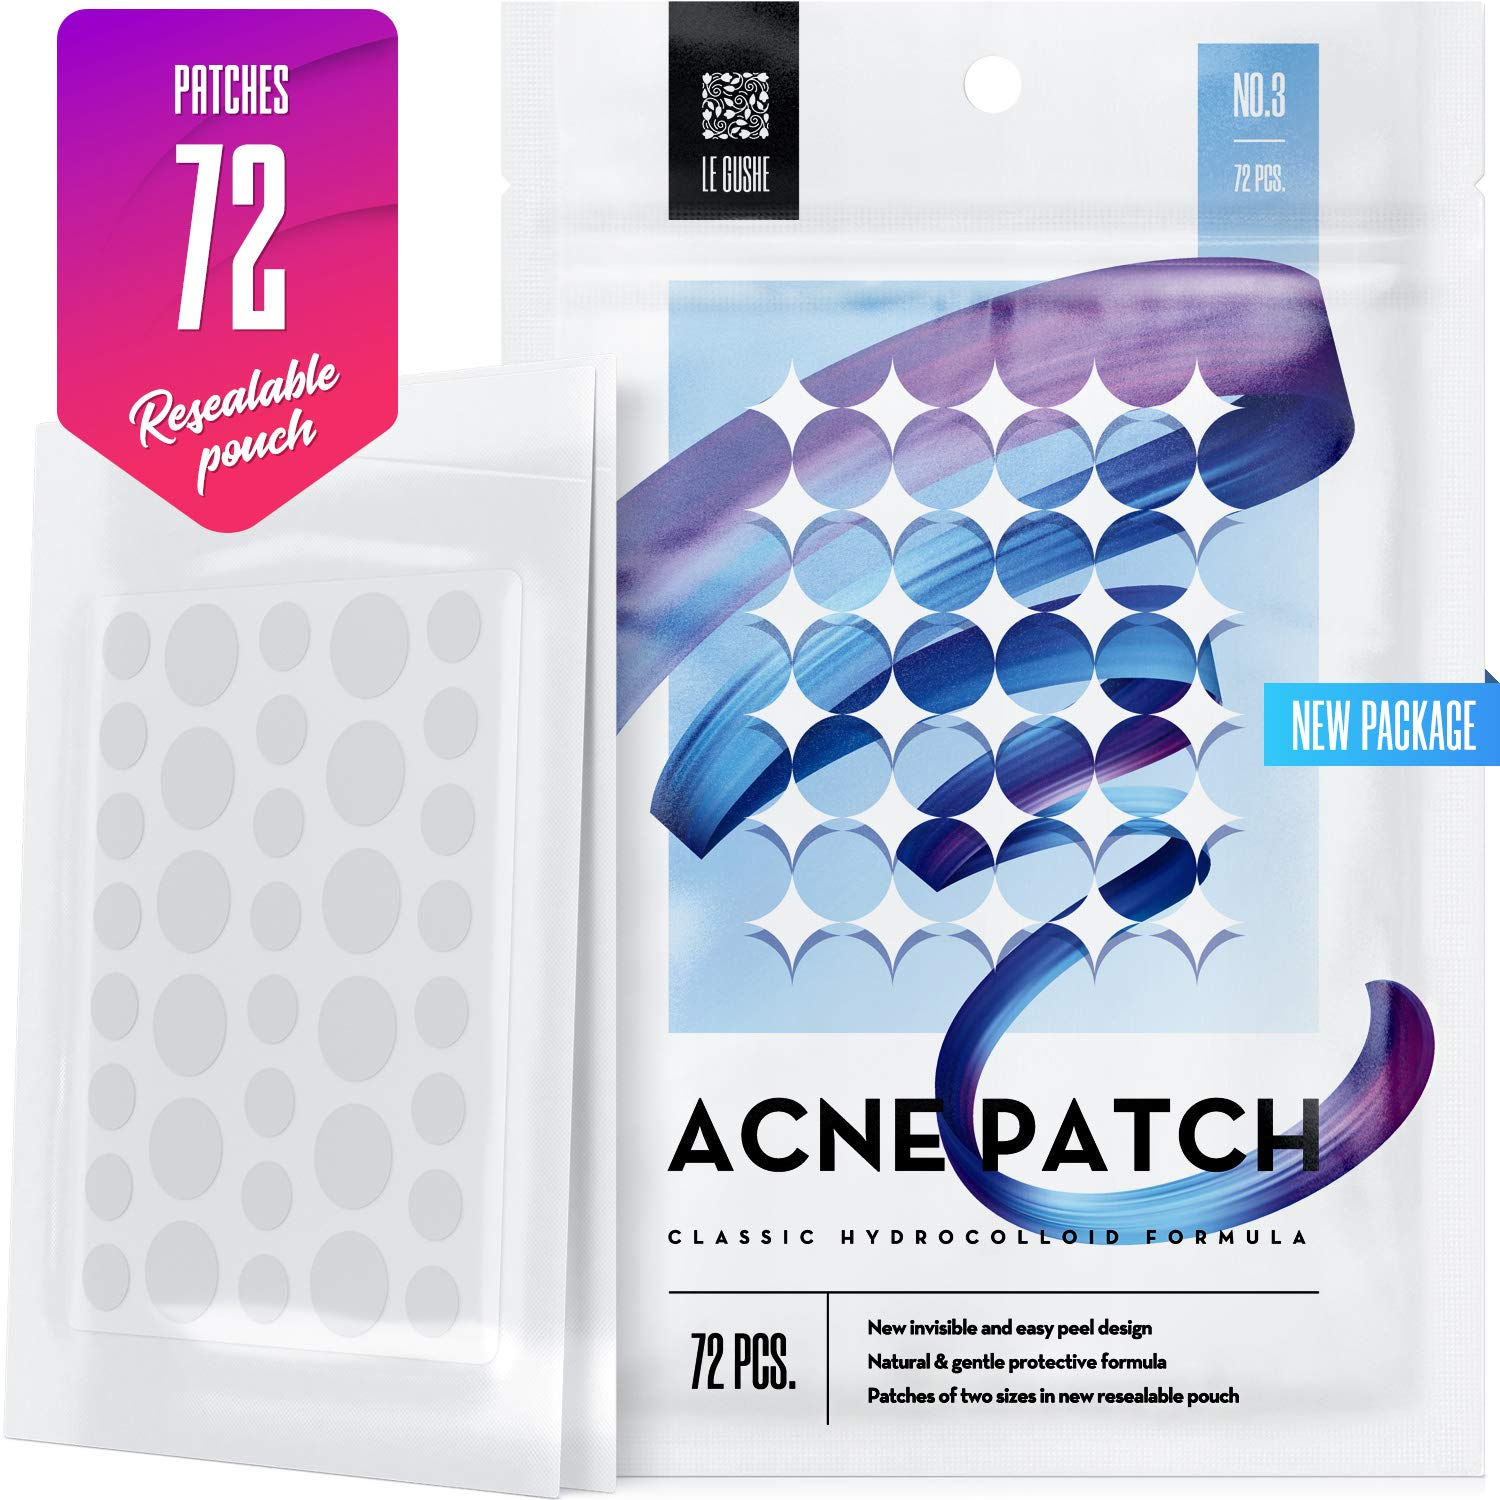 Acne Pimple Master Patch 72 dots - Absorbing Hydrocolloid Blemish Spot Skin Treatment and Care Dressing by Le Gushe